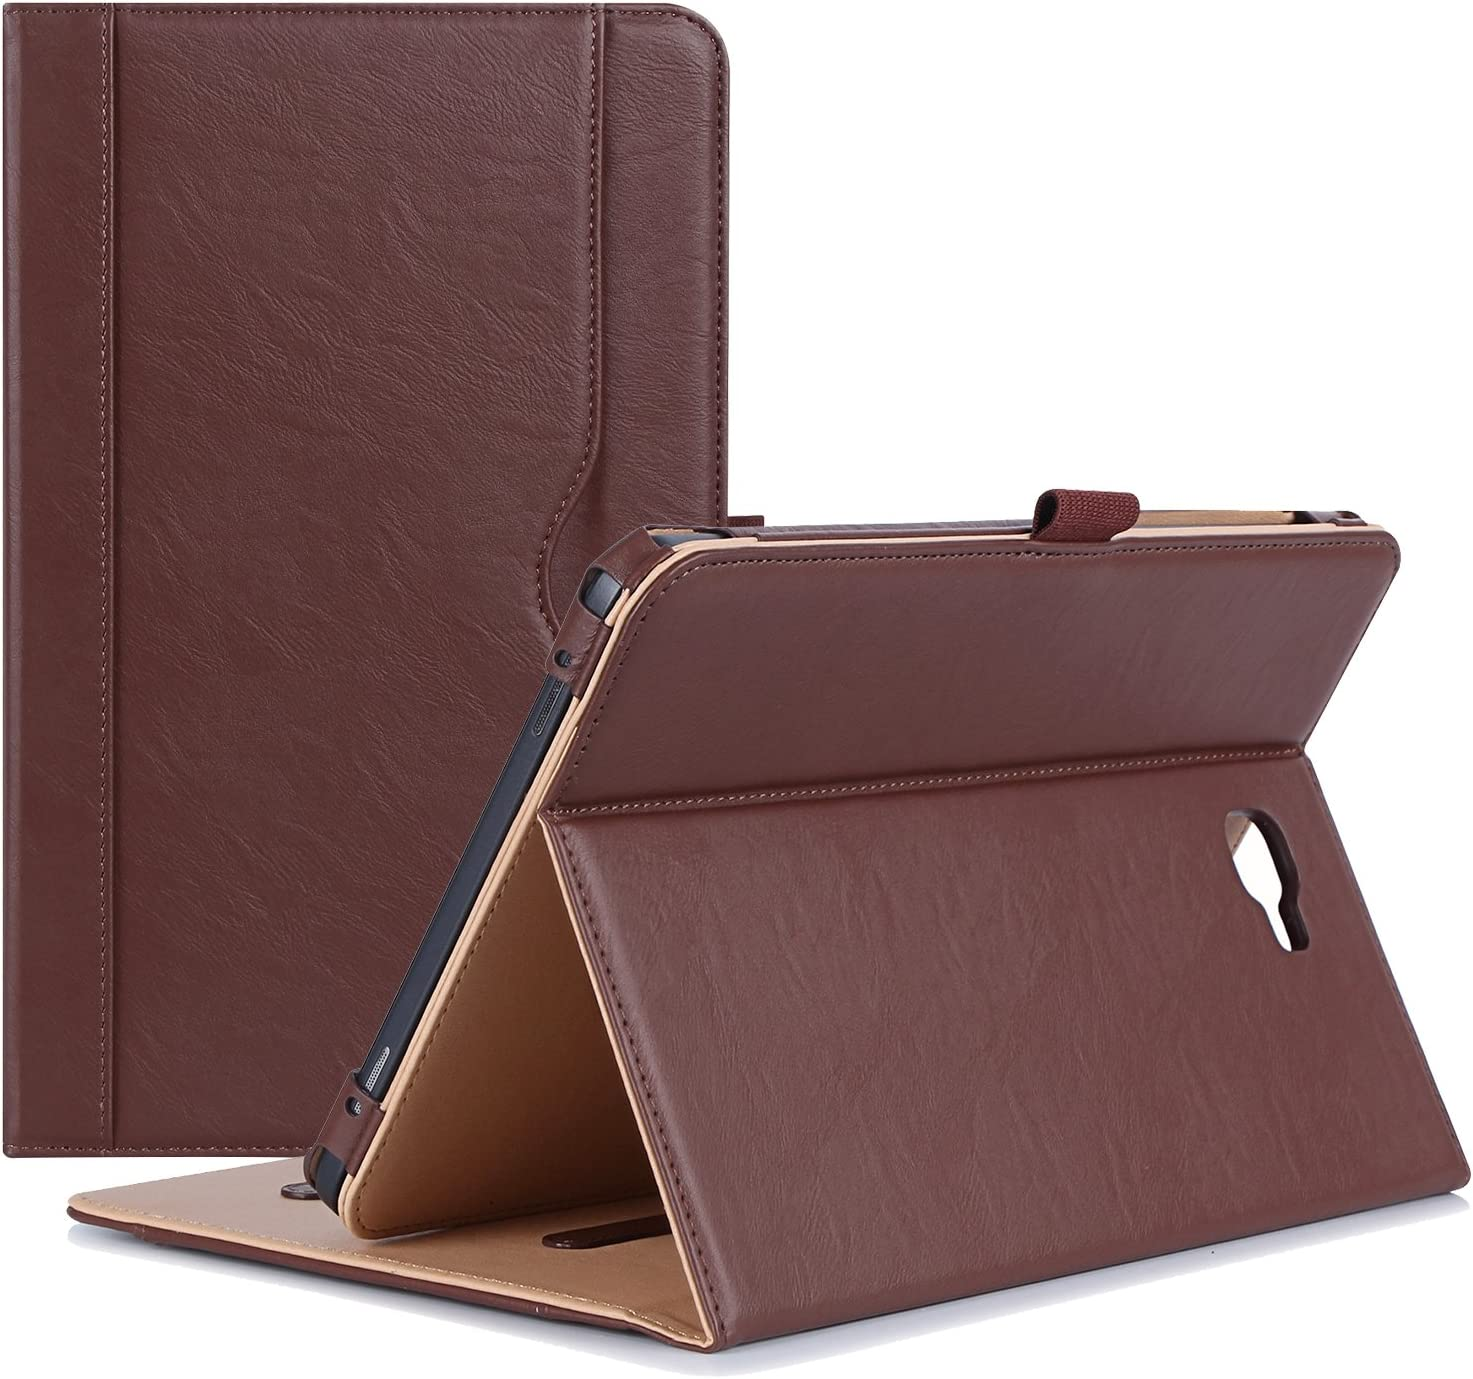 """ProCase Galaxy Tab A 10.1 Case 2016 Old Model, Stand Folio Case Cover for Galaxy Tab A 10.1"""" Tablet SM-T580 T585 T587 (NO S Pen Version) with Multiple Viewing Angles, Card Pocket -Brown"""